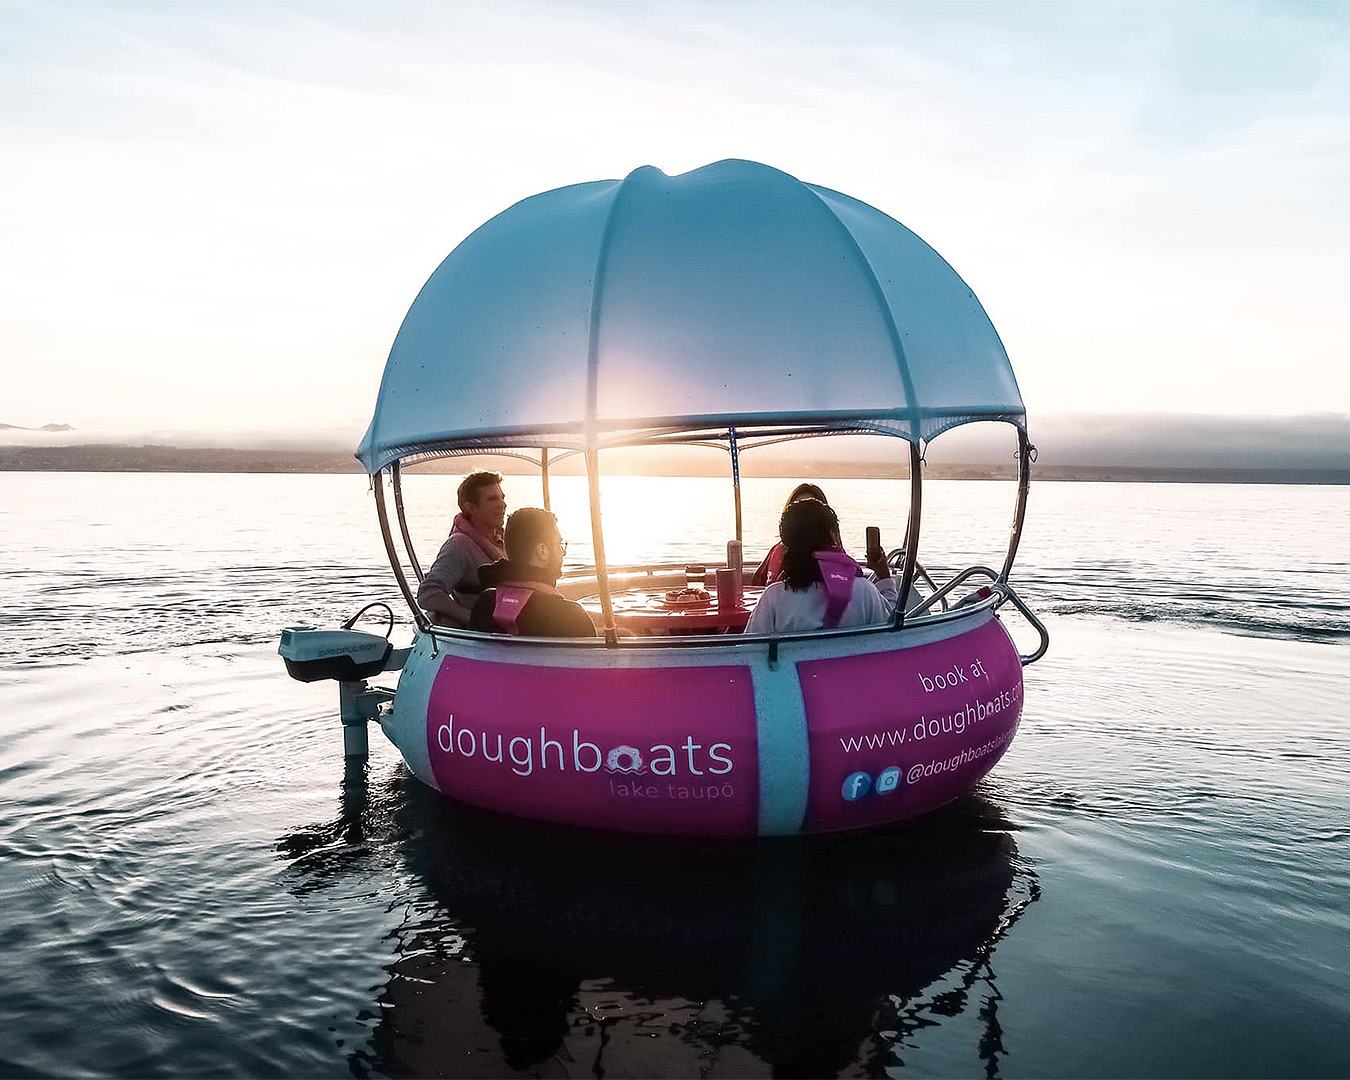 A doughboat bobs on the water.